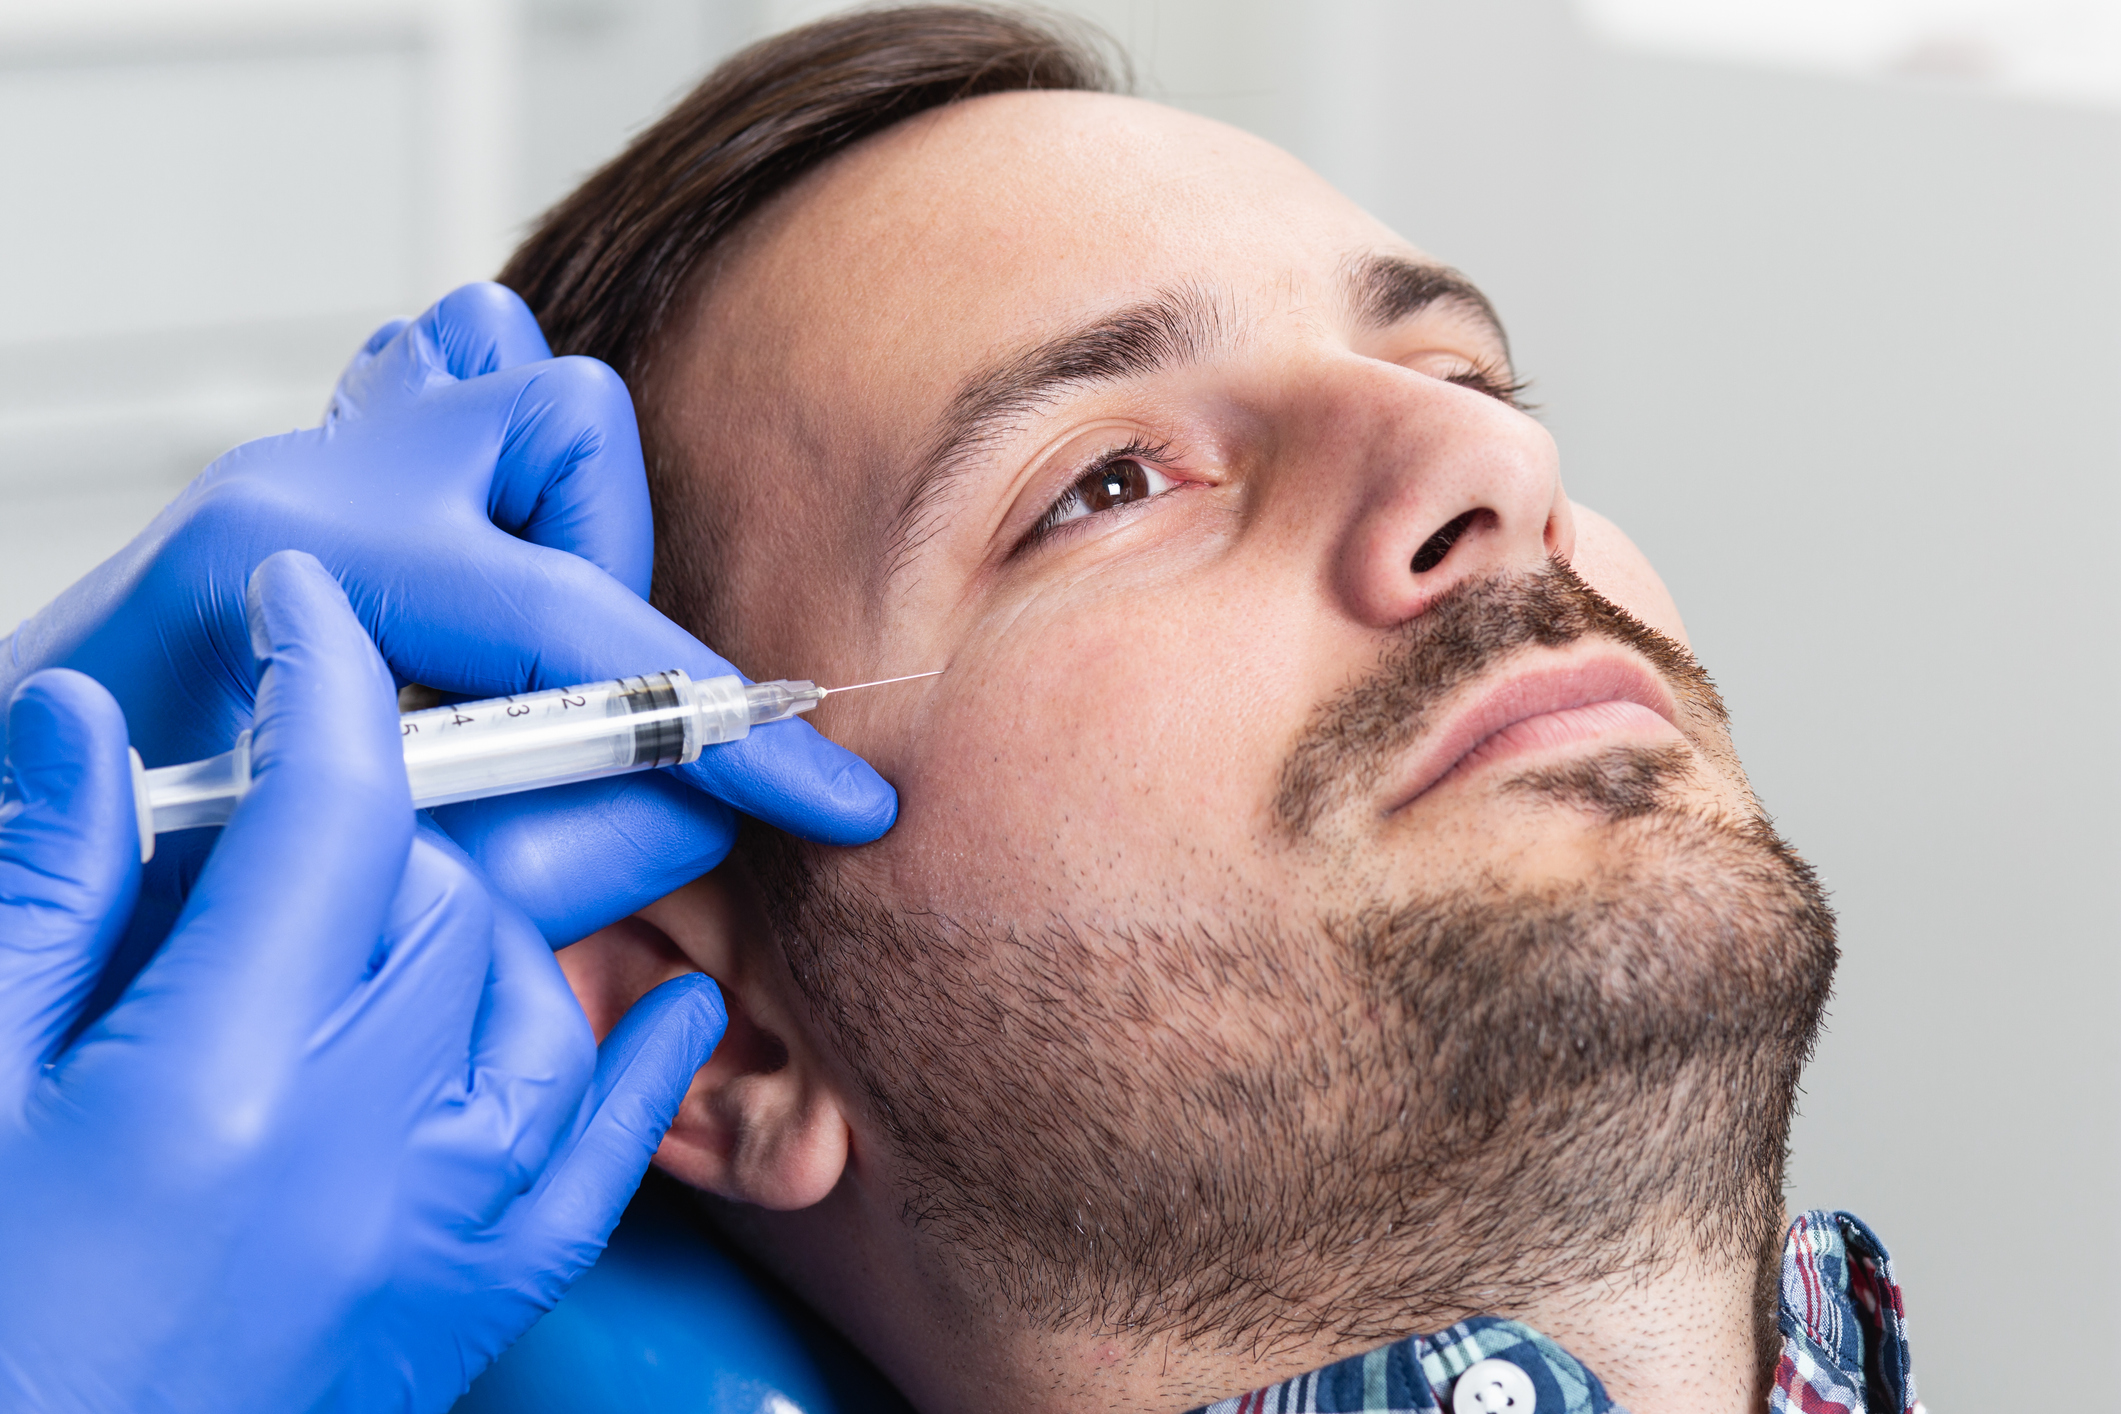 Botox and Dermal Fillers Are Great for Men Too!